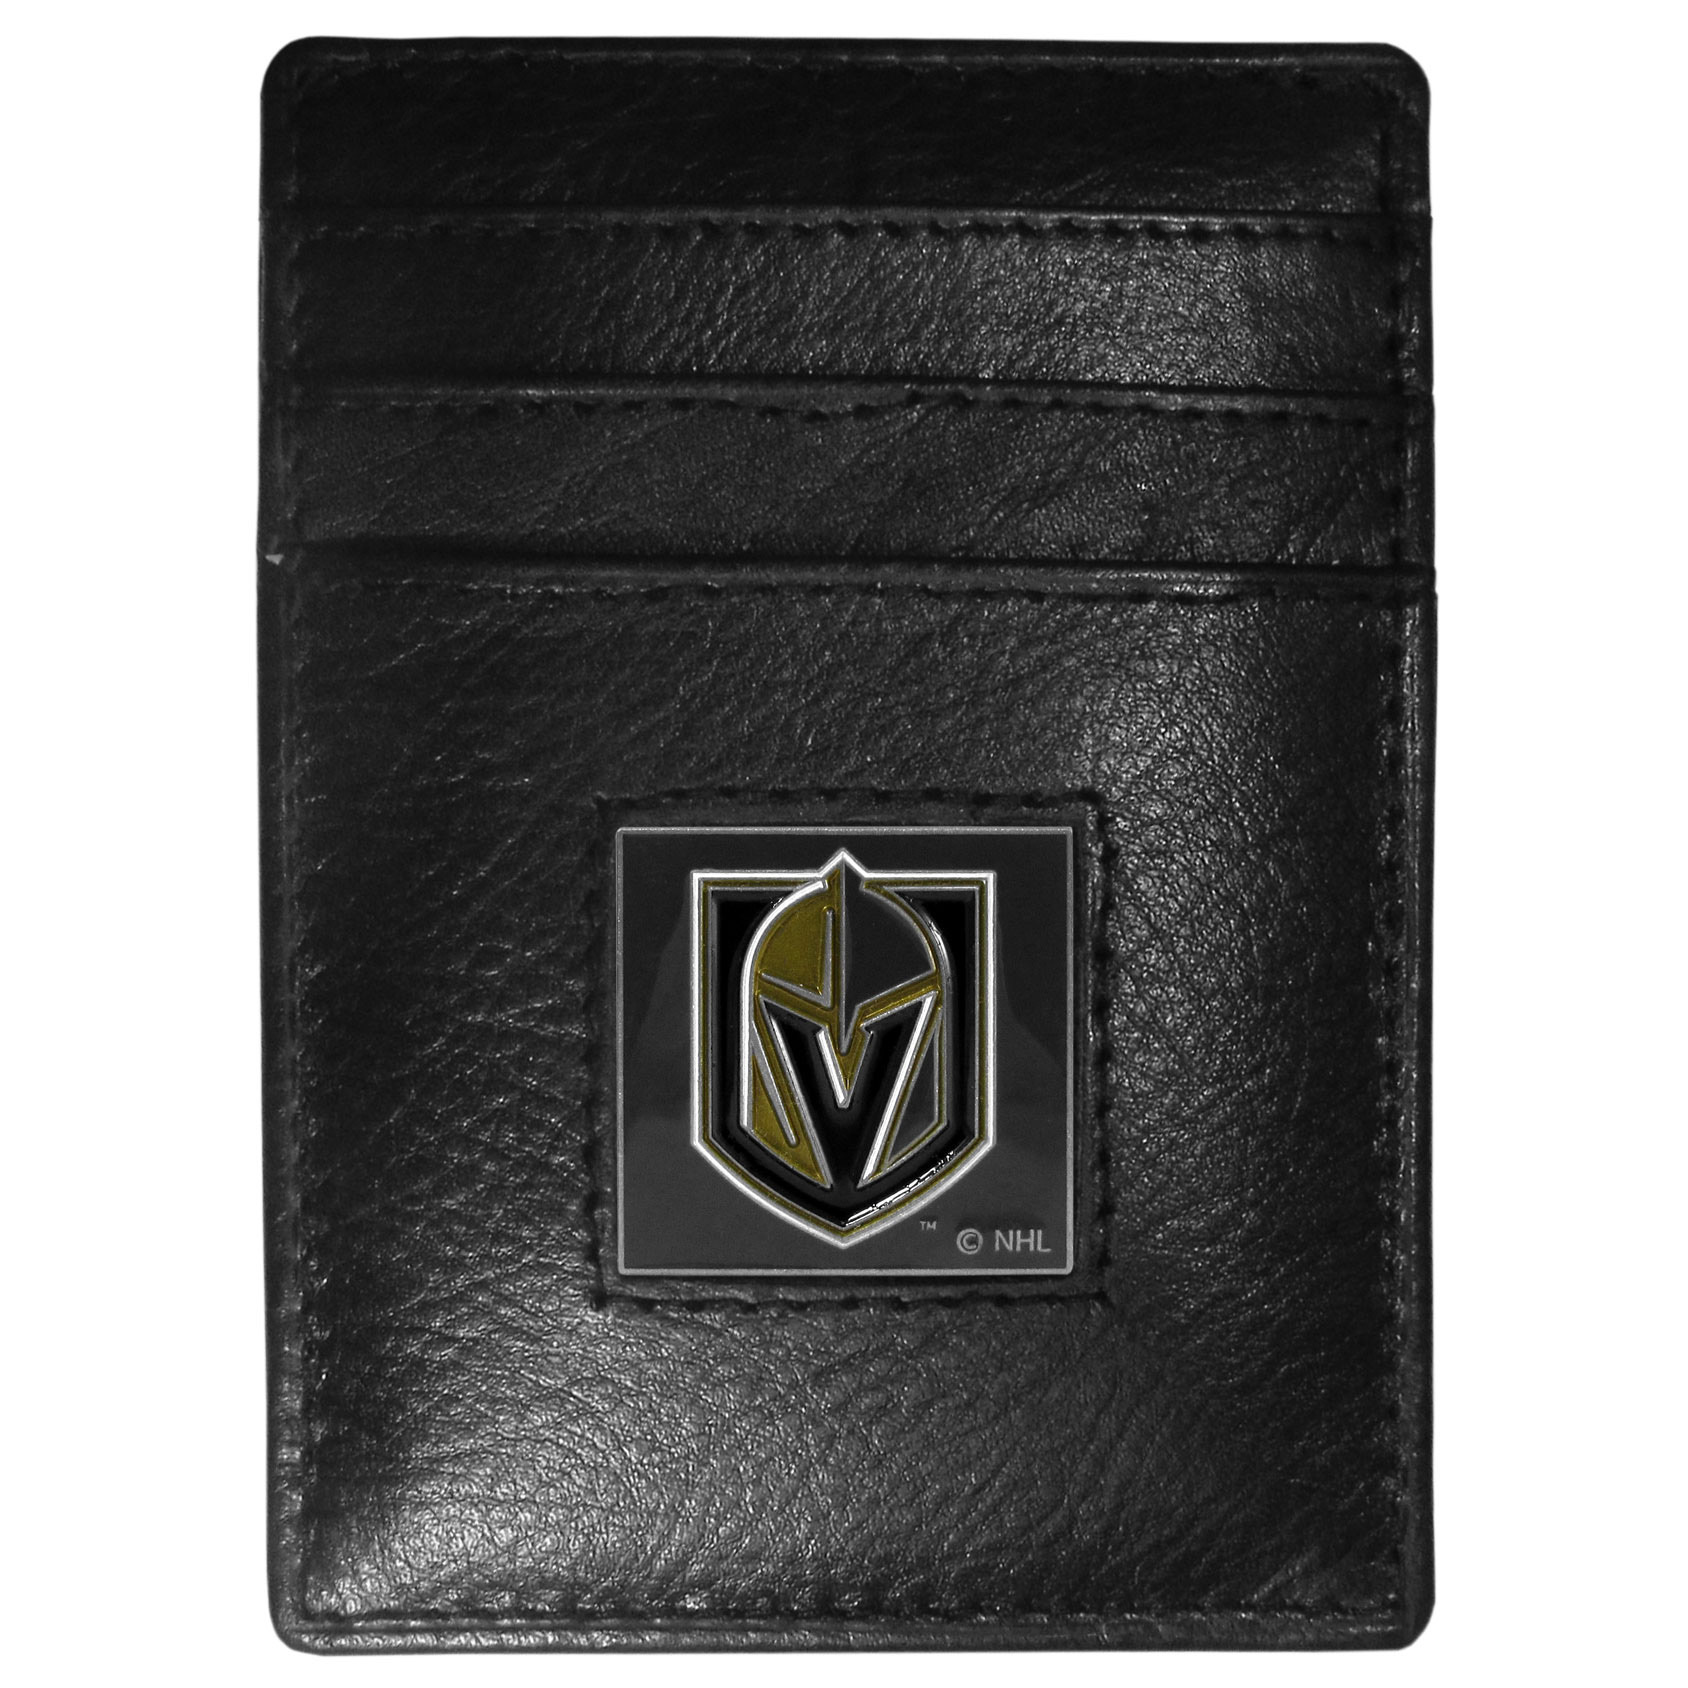 Las Vegas Golden Knights® Leather Money Clip/Cardholder Packaged in Gift Box - Our officially licensed Money Clip/Card Holders won't make you choose between paper or plastic because they stow both easily. Features our sculpted and enameled Las Vegas Golden Knights® emblem on the front of the wallet.